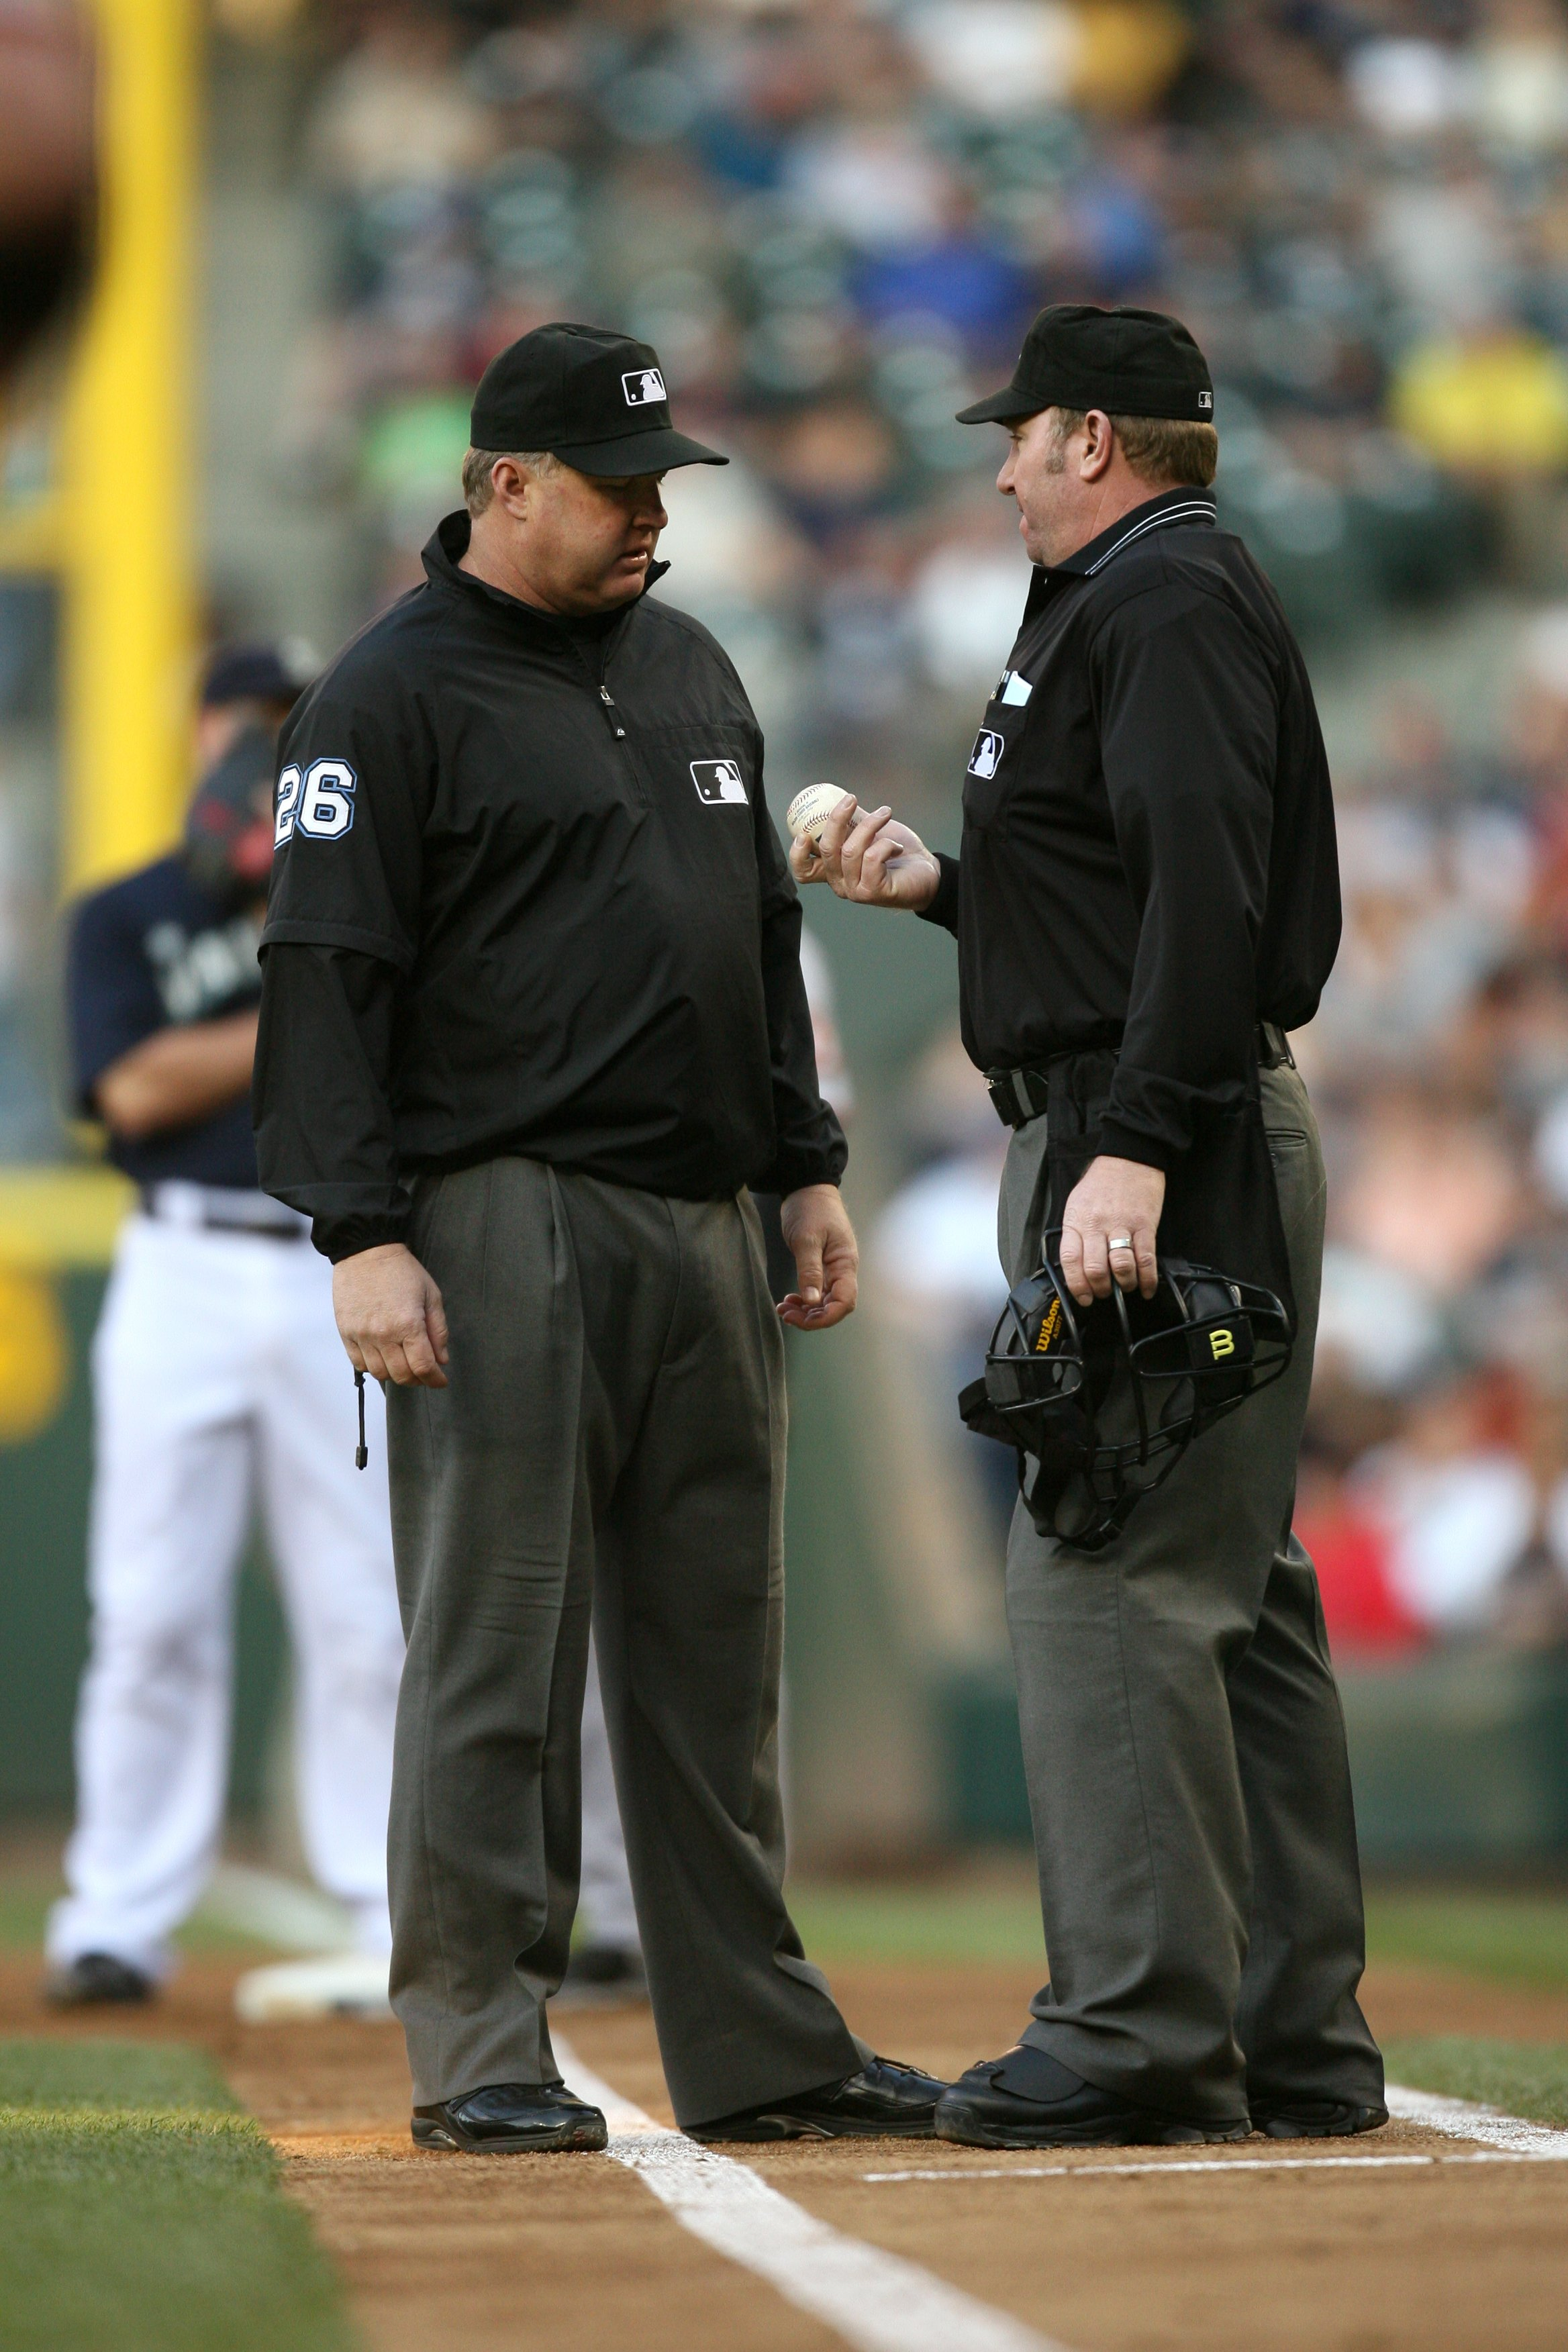 SEATTLE - MAY 22:  MLB home plate umpire Brian Runge and first base umpire Bill Miller #26 confer near the infield foul line during the game between the San Francisco Giants  and the Seattle Mariners on May 22, 2009 in Seattle, Washington. The Mariners de